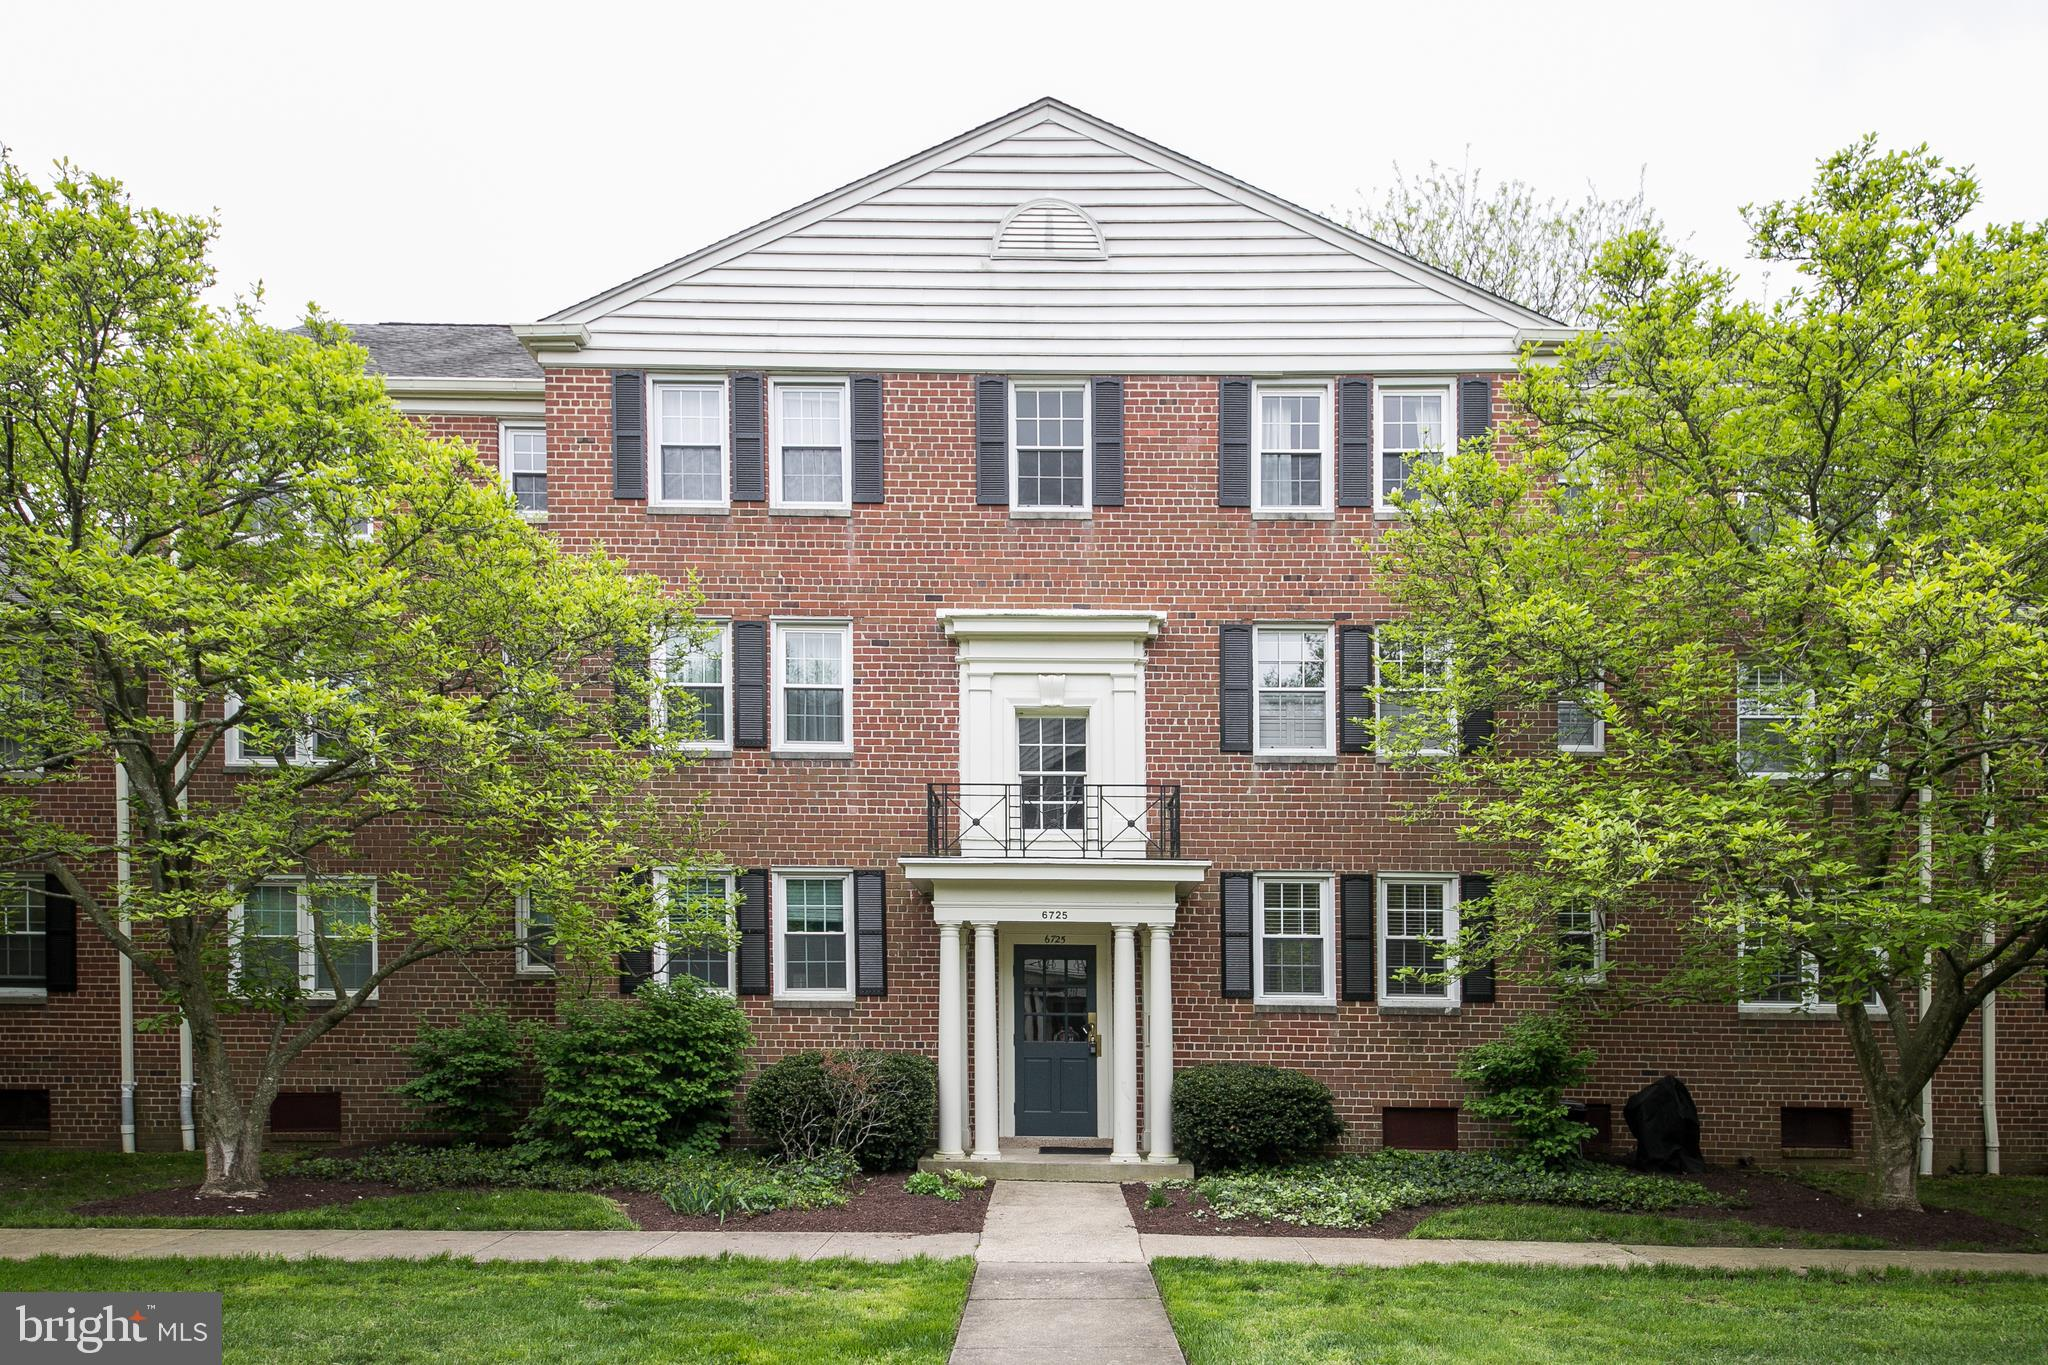 Sought after mid level condo in popular Belle View.  Beautiful private courtyard with magnificent specimen trees.  Updated kitchen with SS appliances, granite and wall opened to dining room, updated bath + beautiful original wood floors.  This unit has additional storage + onsite washers and dryers in the basement!